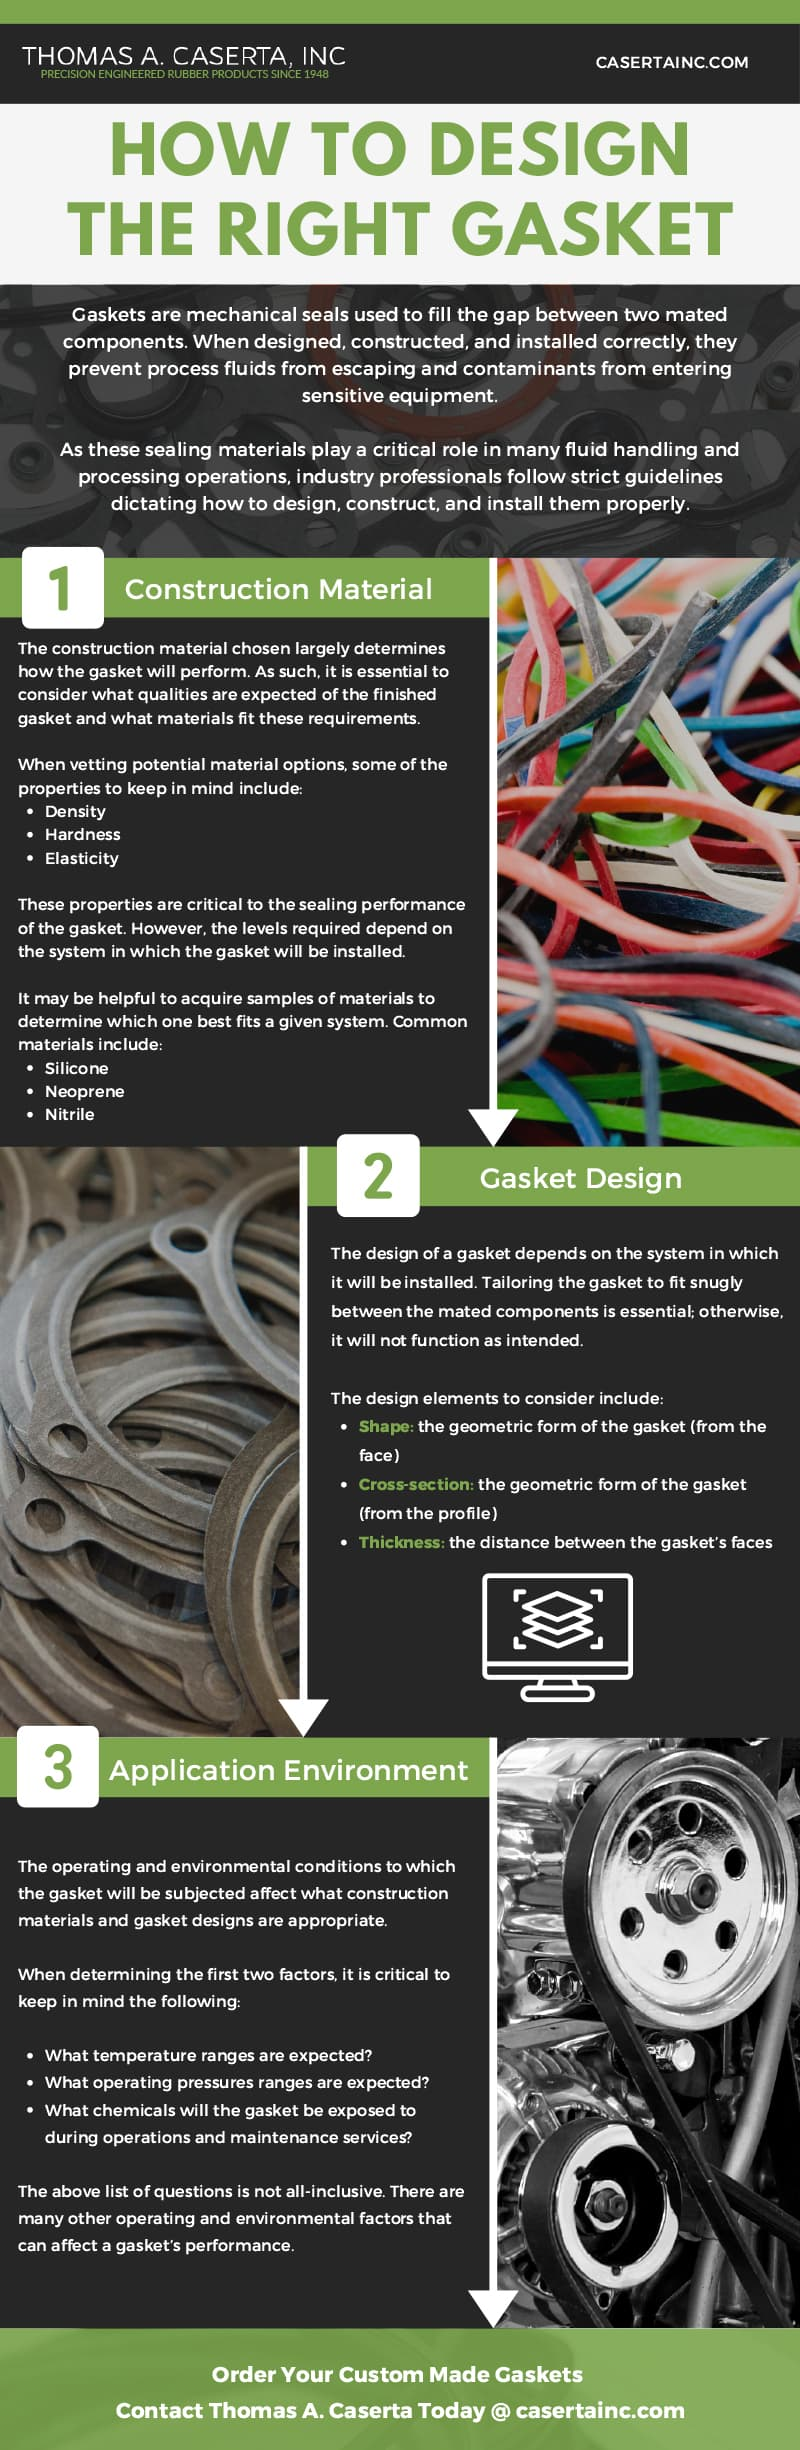 How To Design The Right Gasket